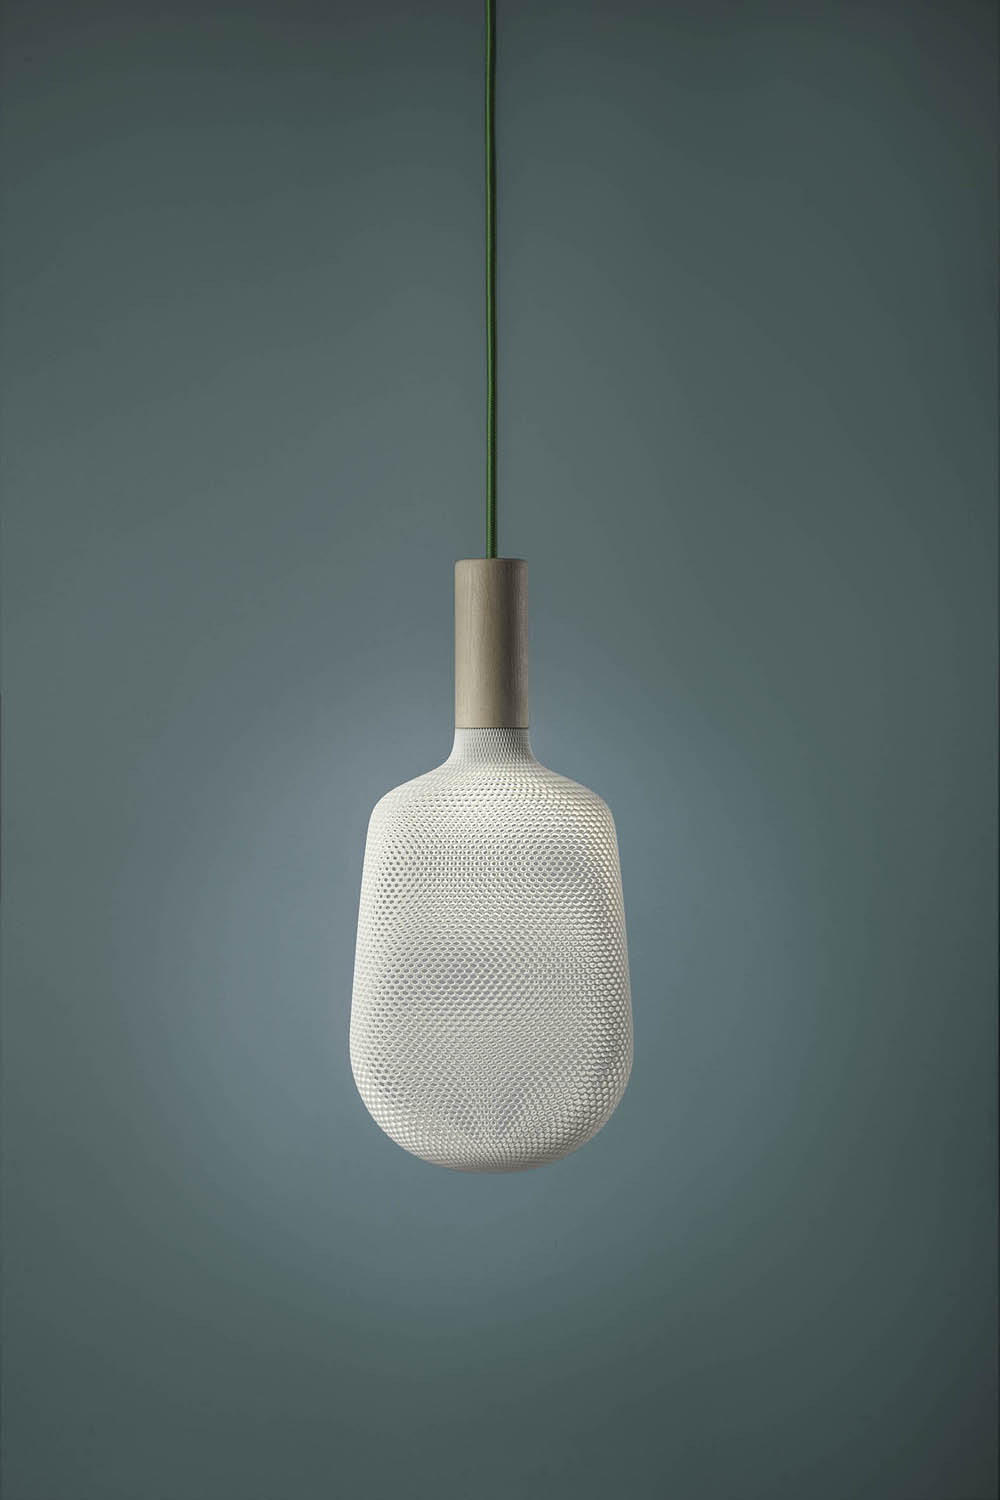 AFILLIA 3D Printed Light by Zambelli | Yellowtrace